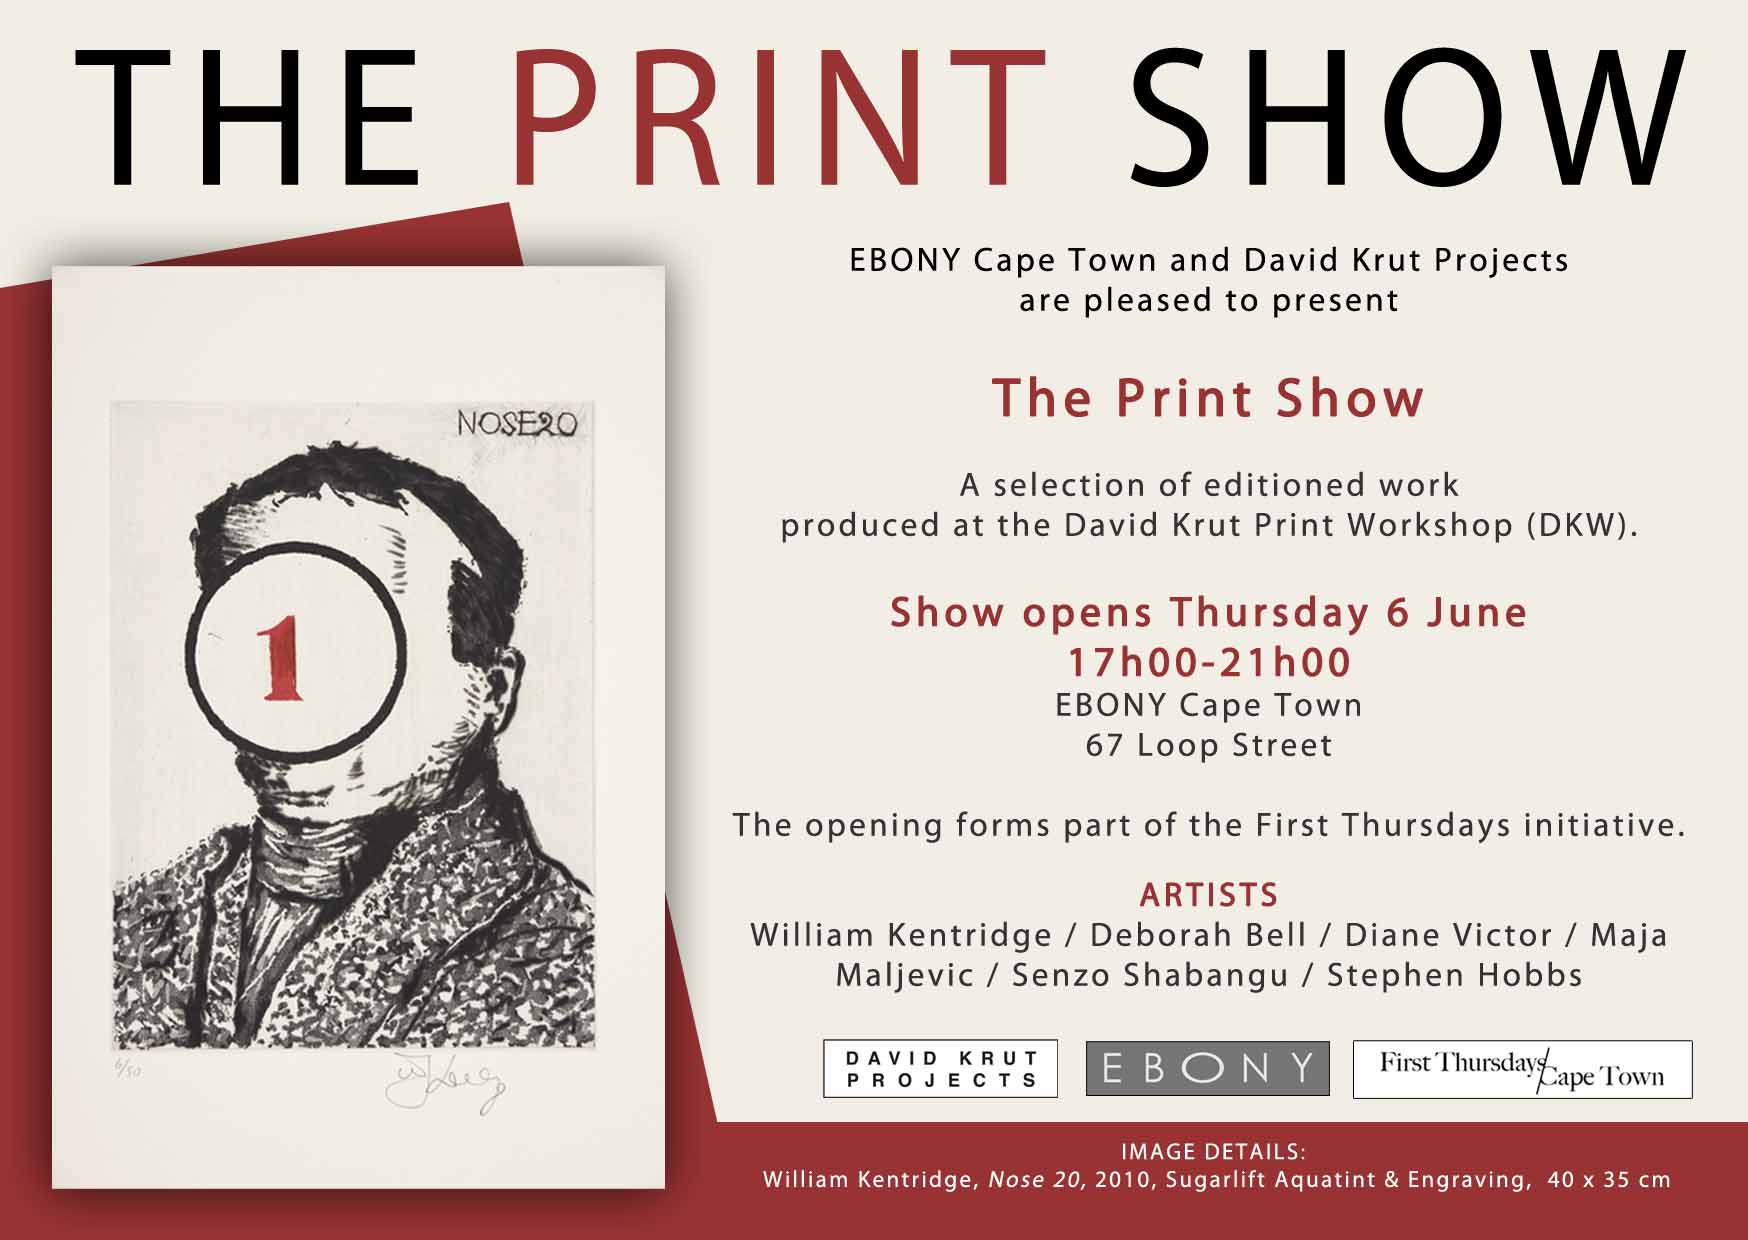 The print show LOW RES